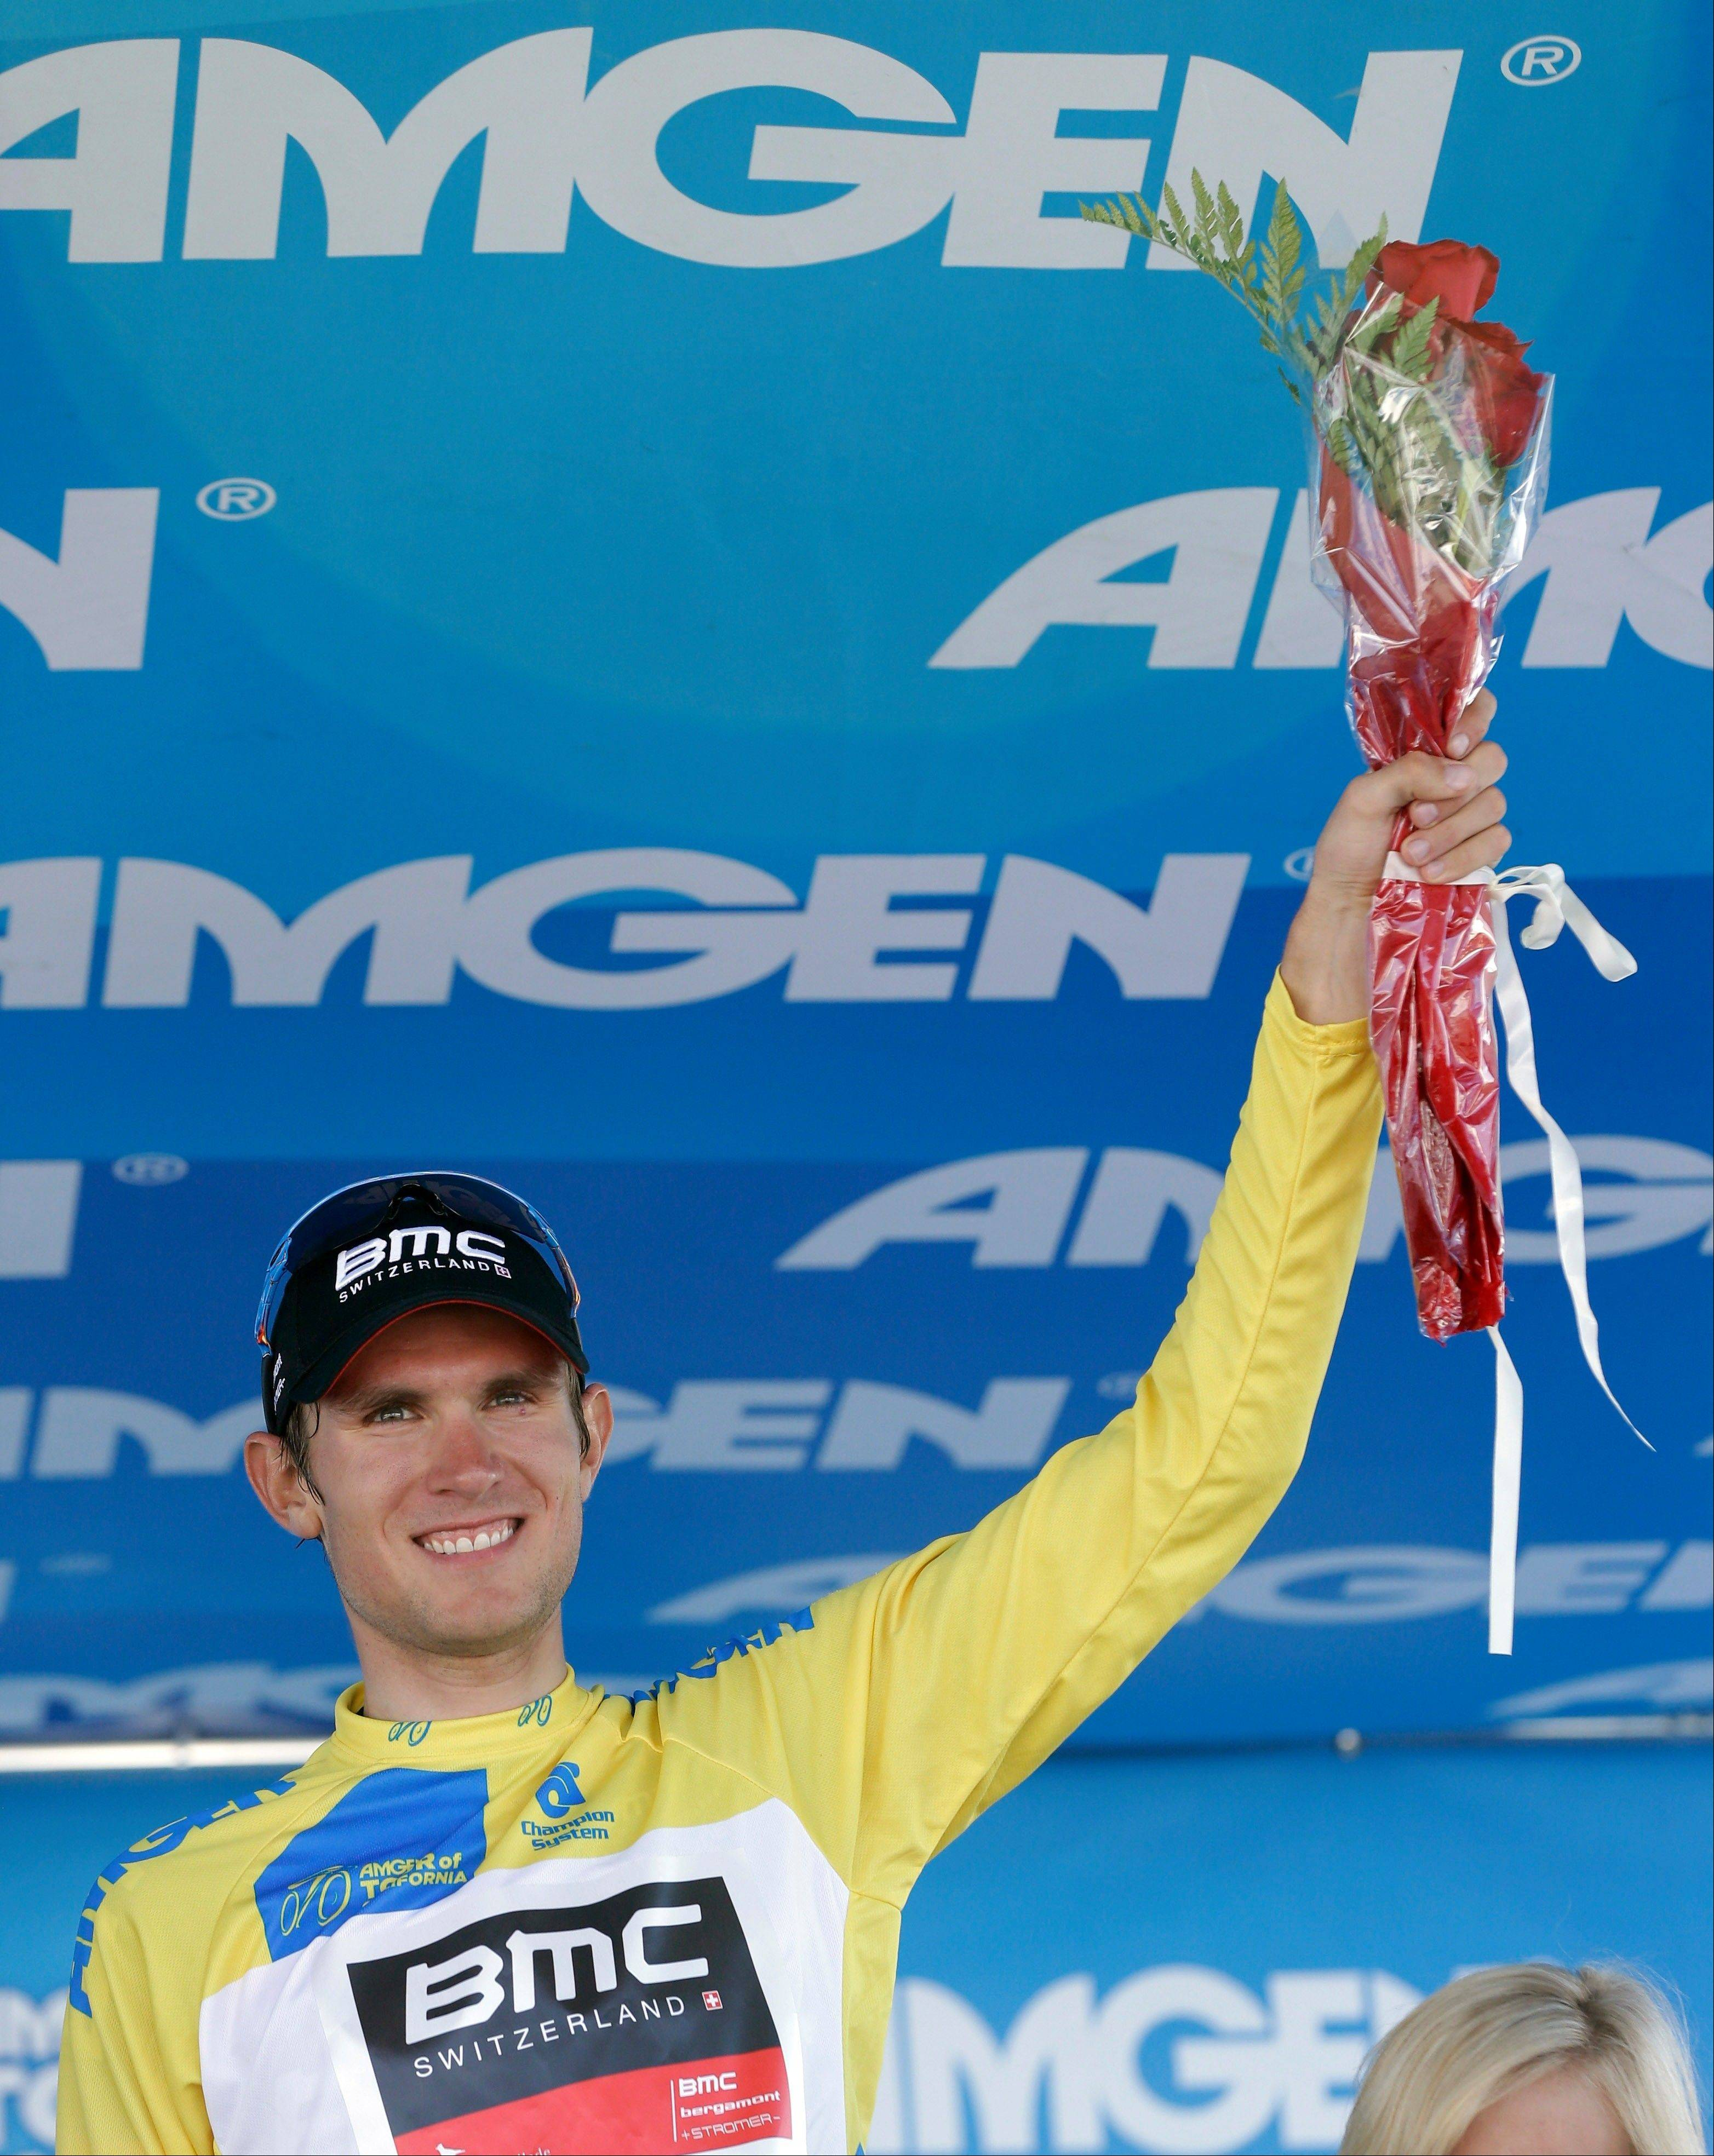 Tejay Van Garderen is the United States' best young rider. He won this year's Tour of California.